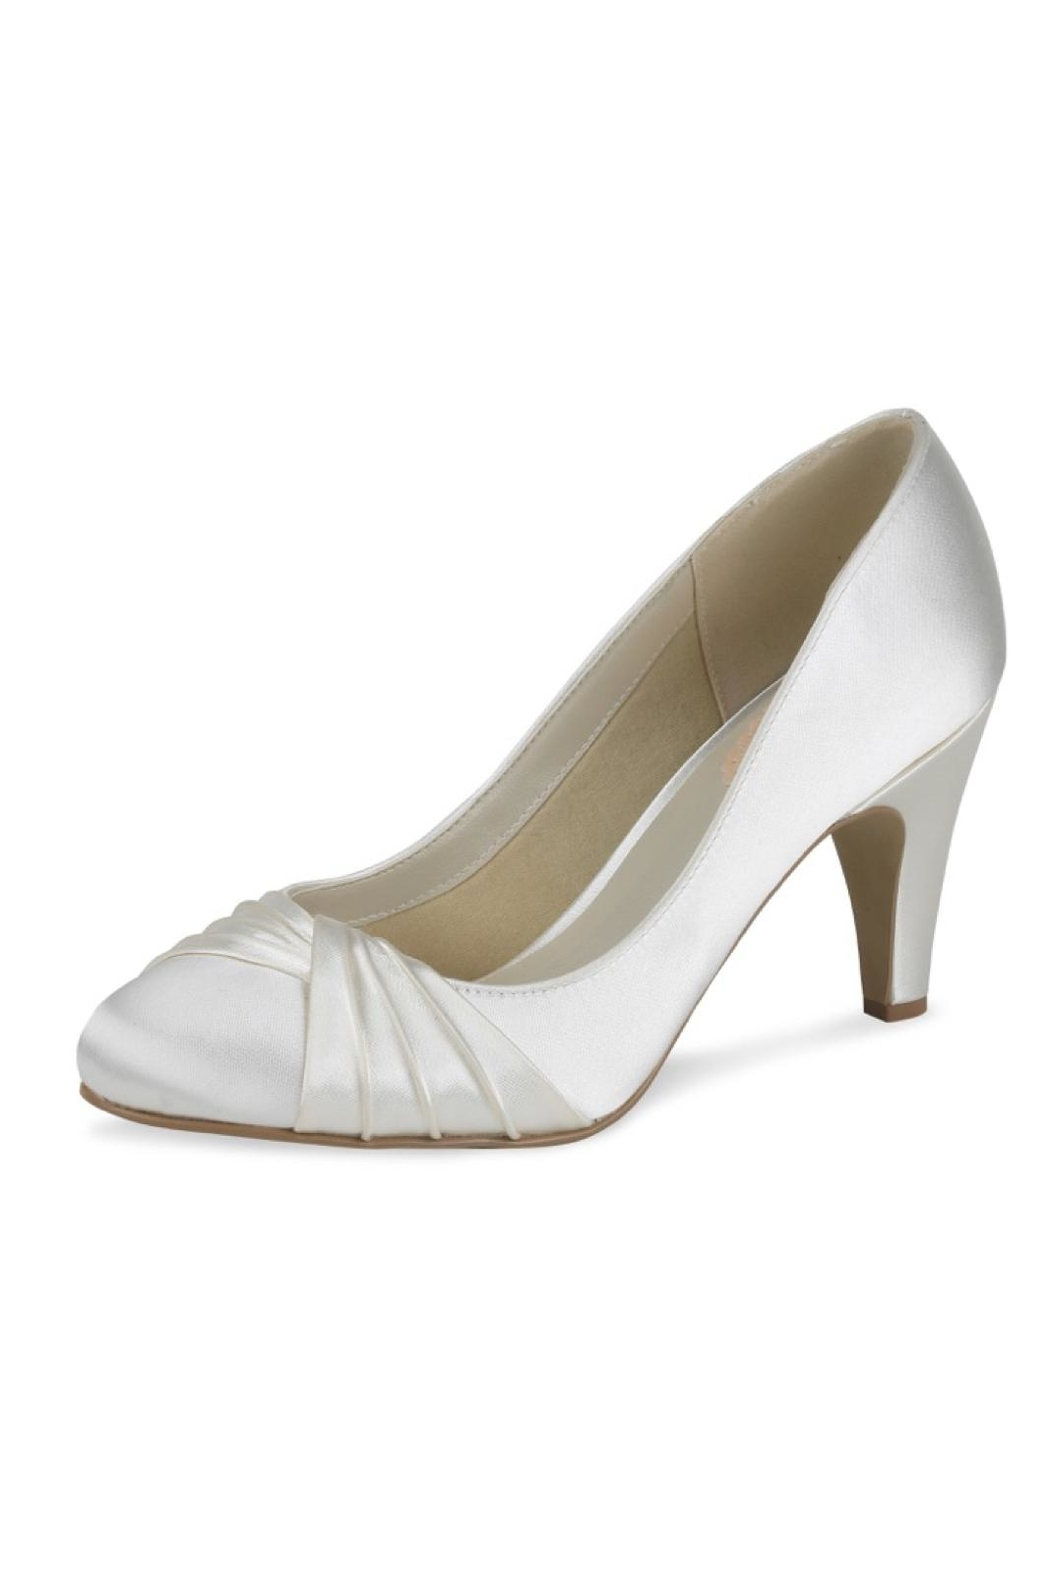 pink paradox London Ruffle Ivory Satin Heel - Front Cropped Image